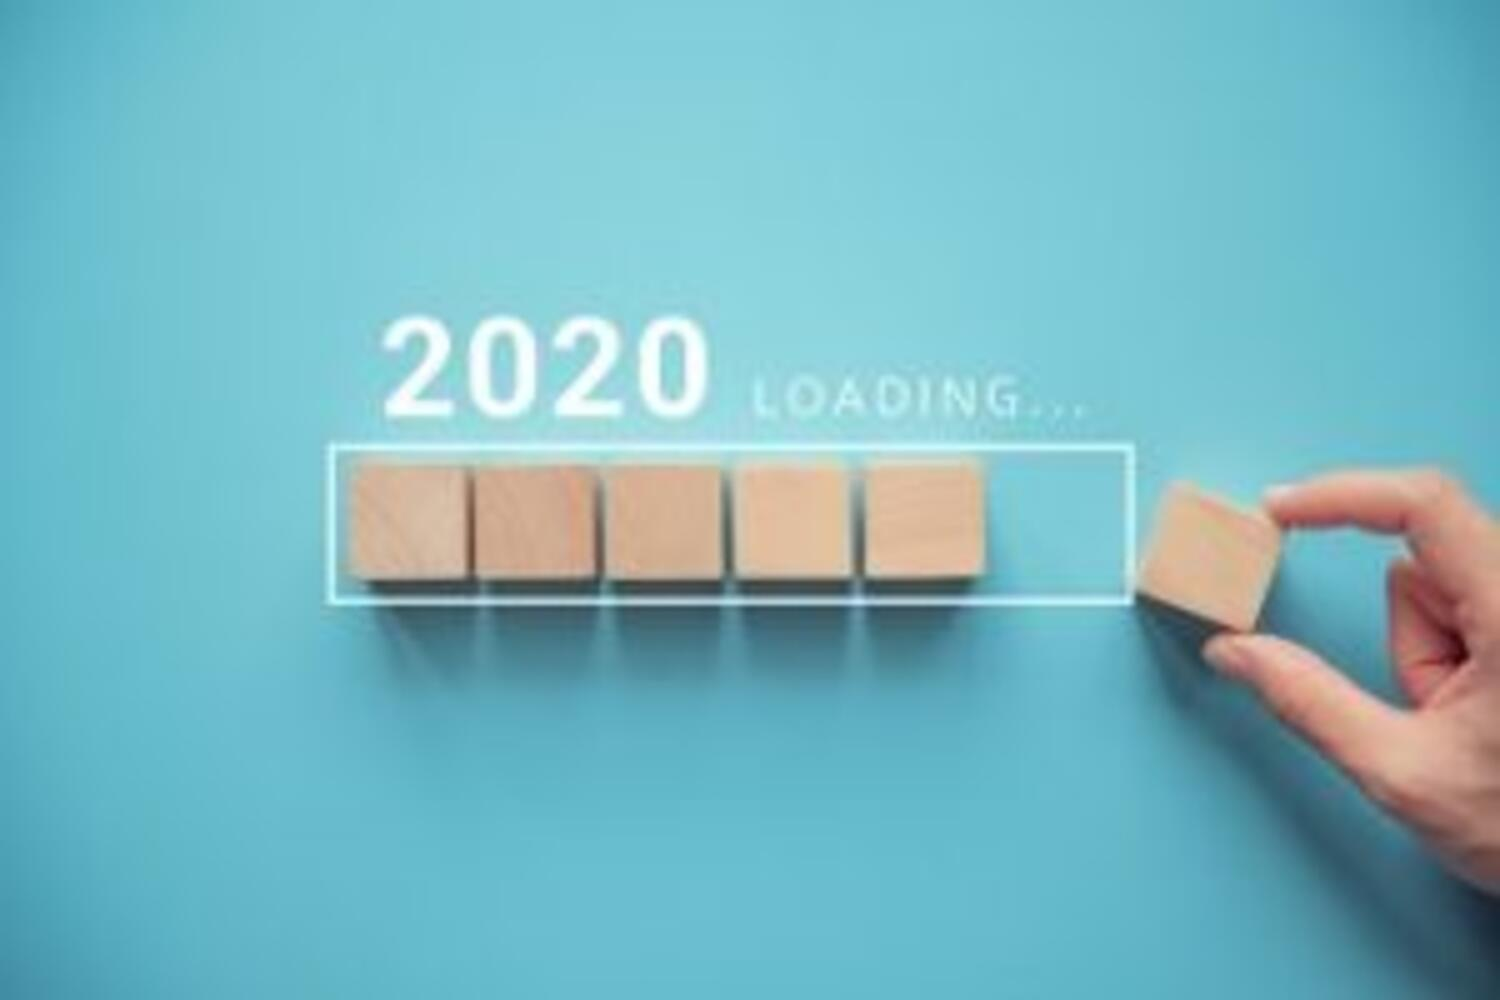 2020 loading with hand holding blank game board tiles